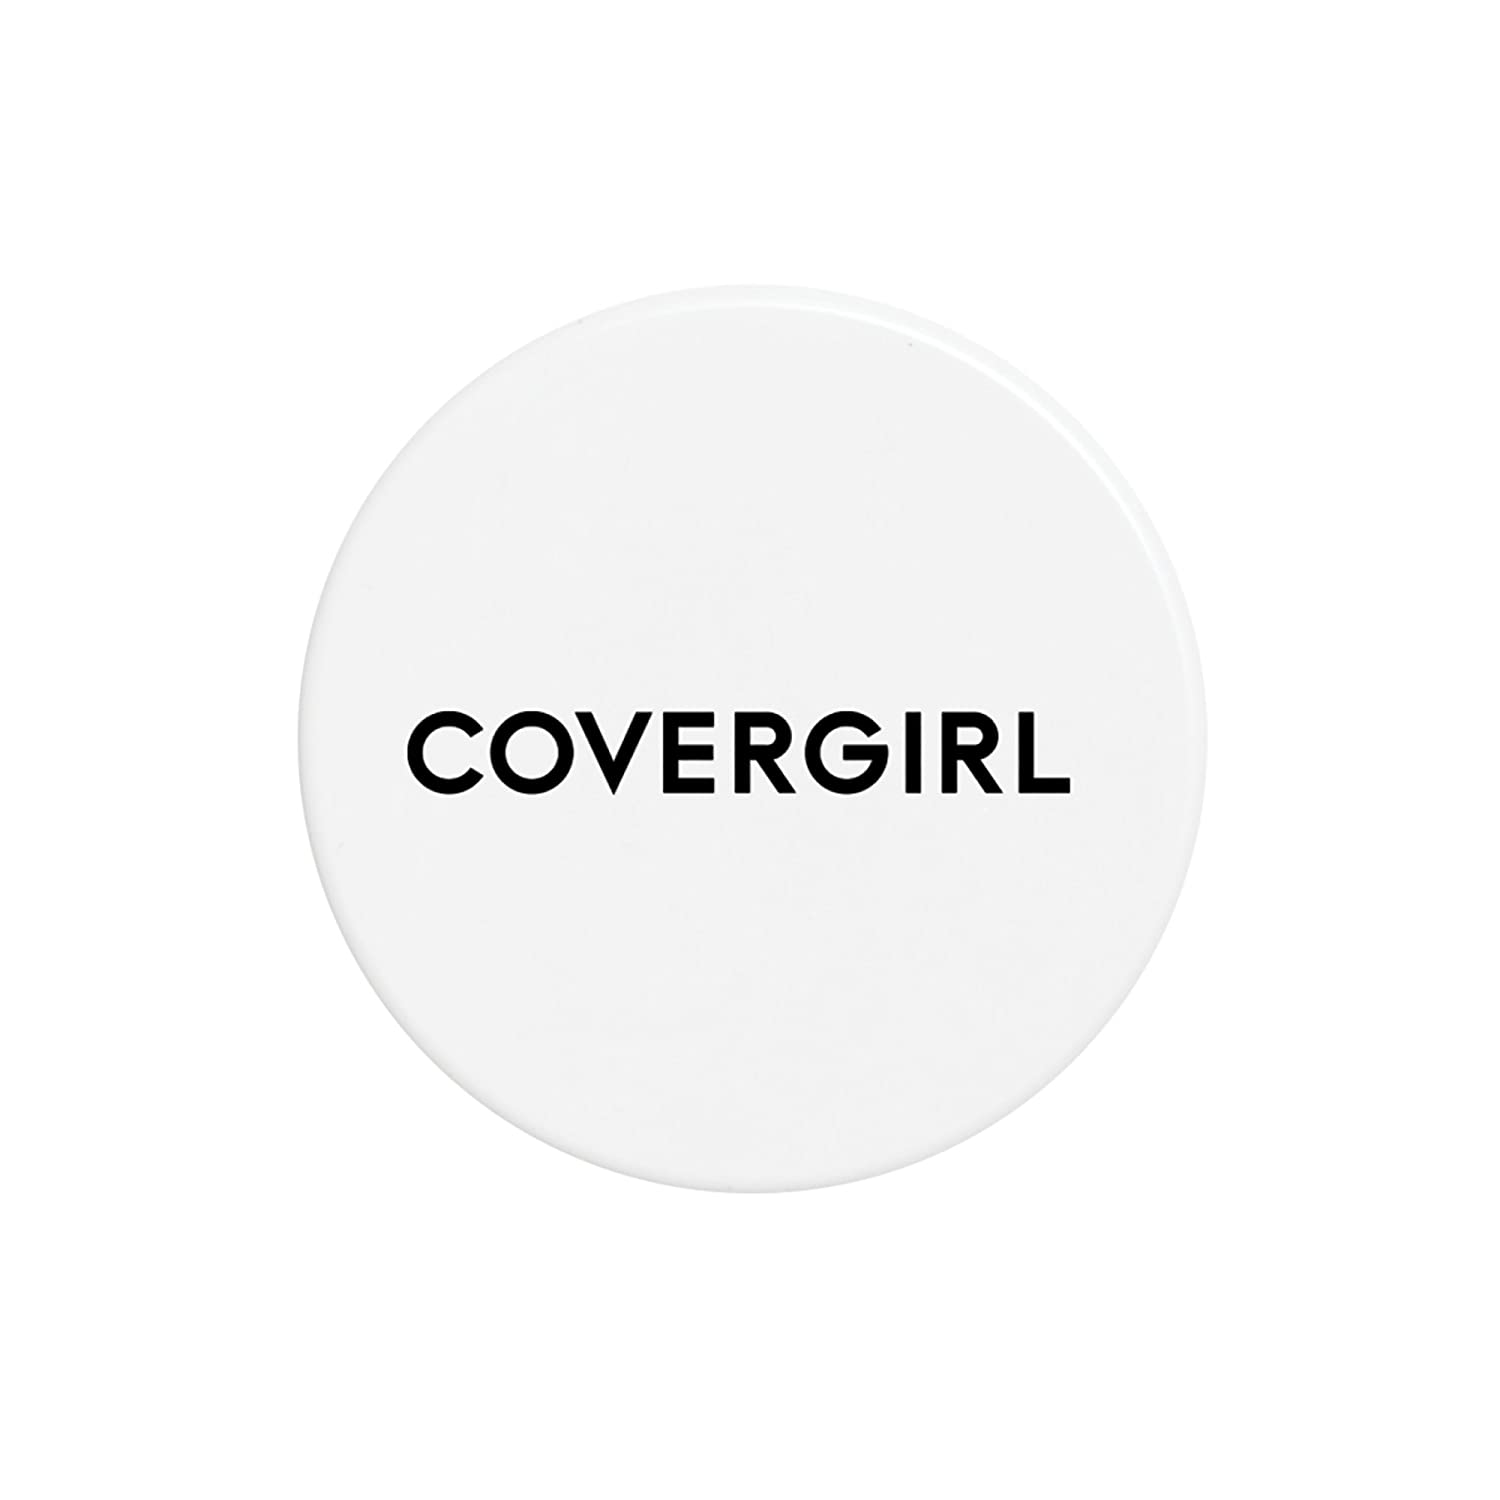 COVERGIRL - Vitalist Healthy Glow Highlighter Coty 0046200444608